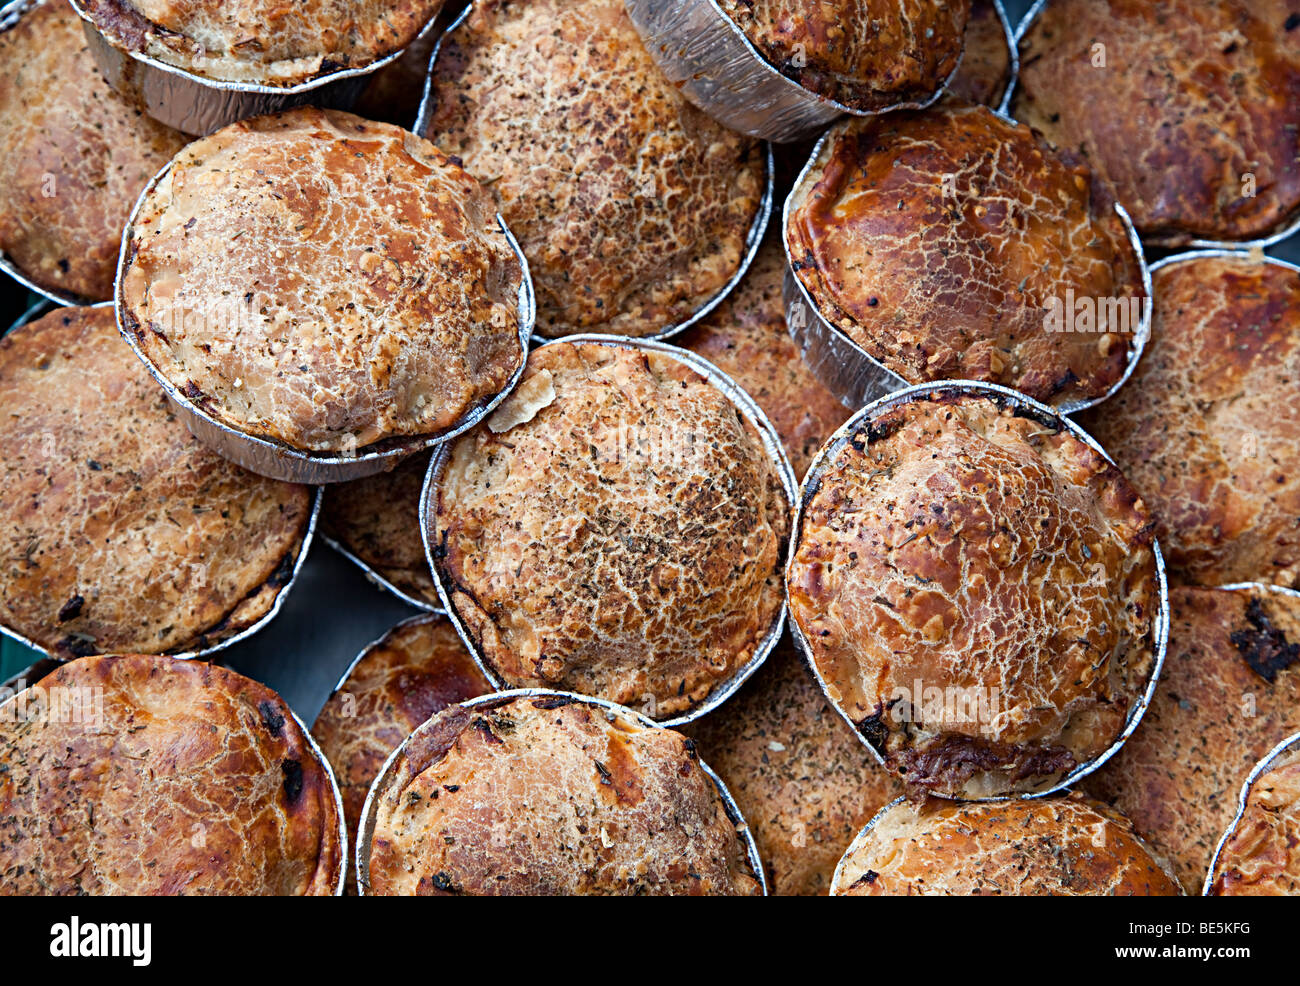 Home made steak pies on sale UK - Stock Image